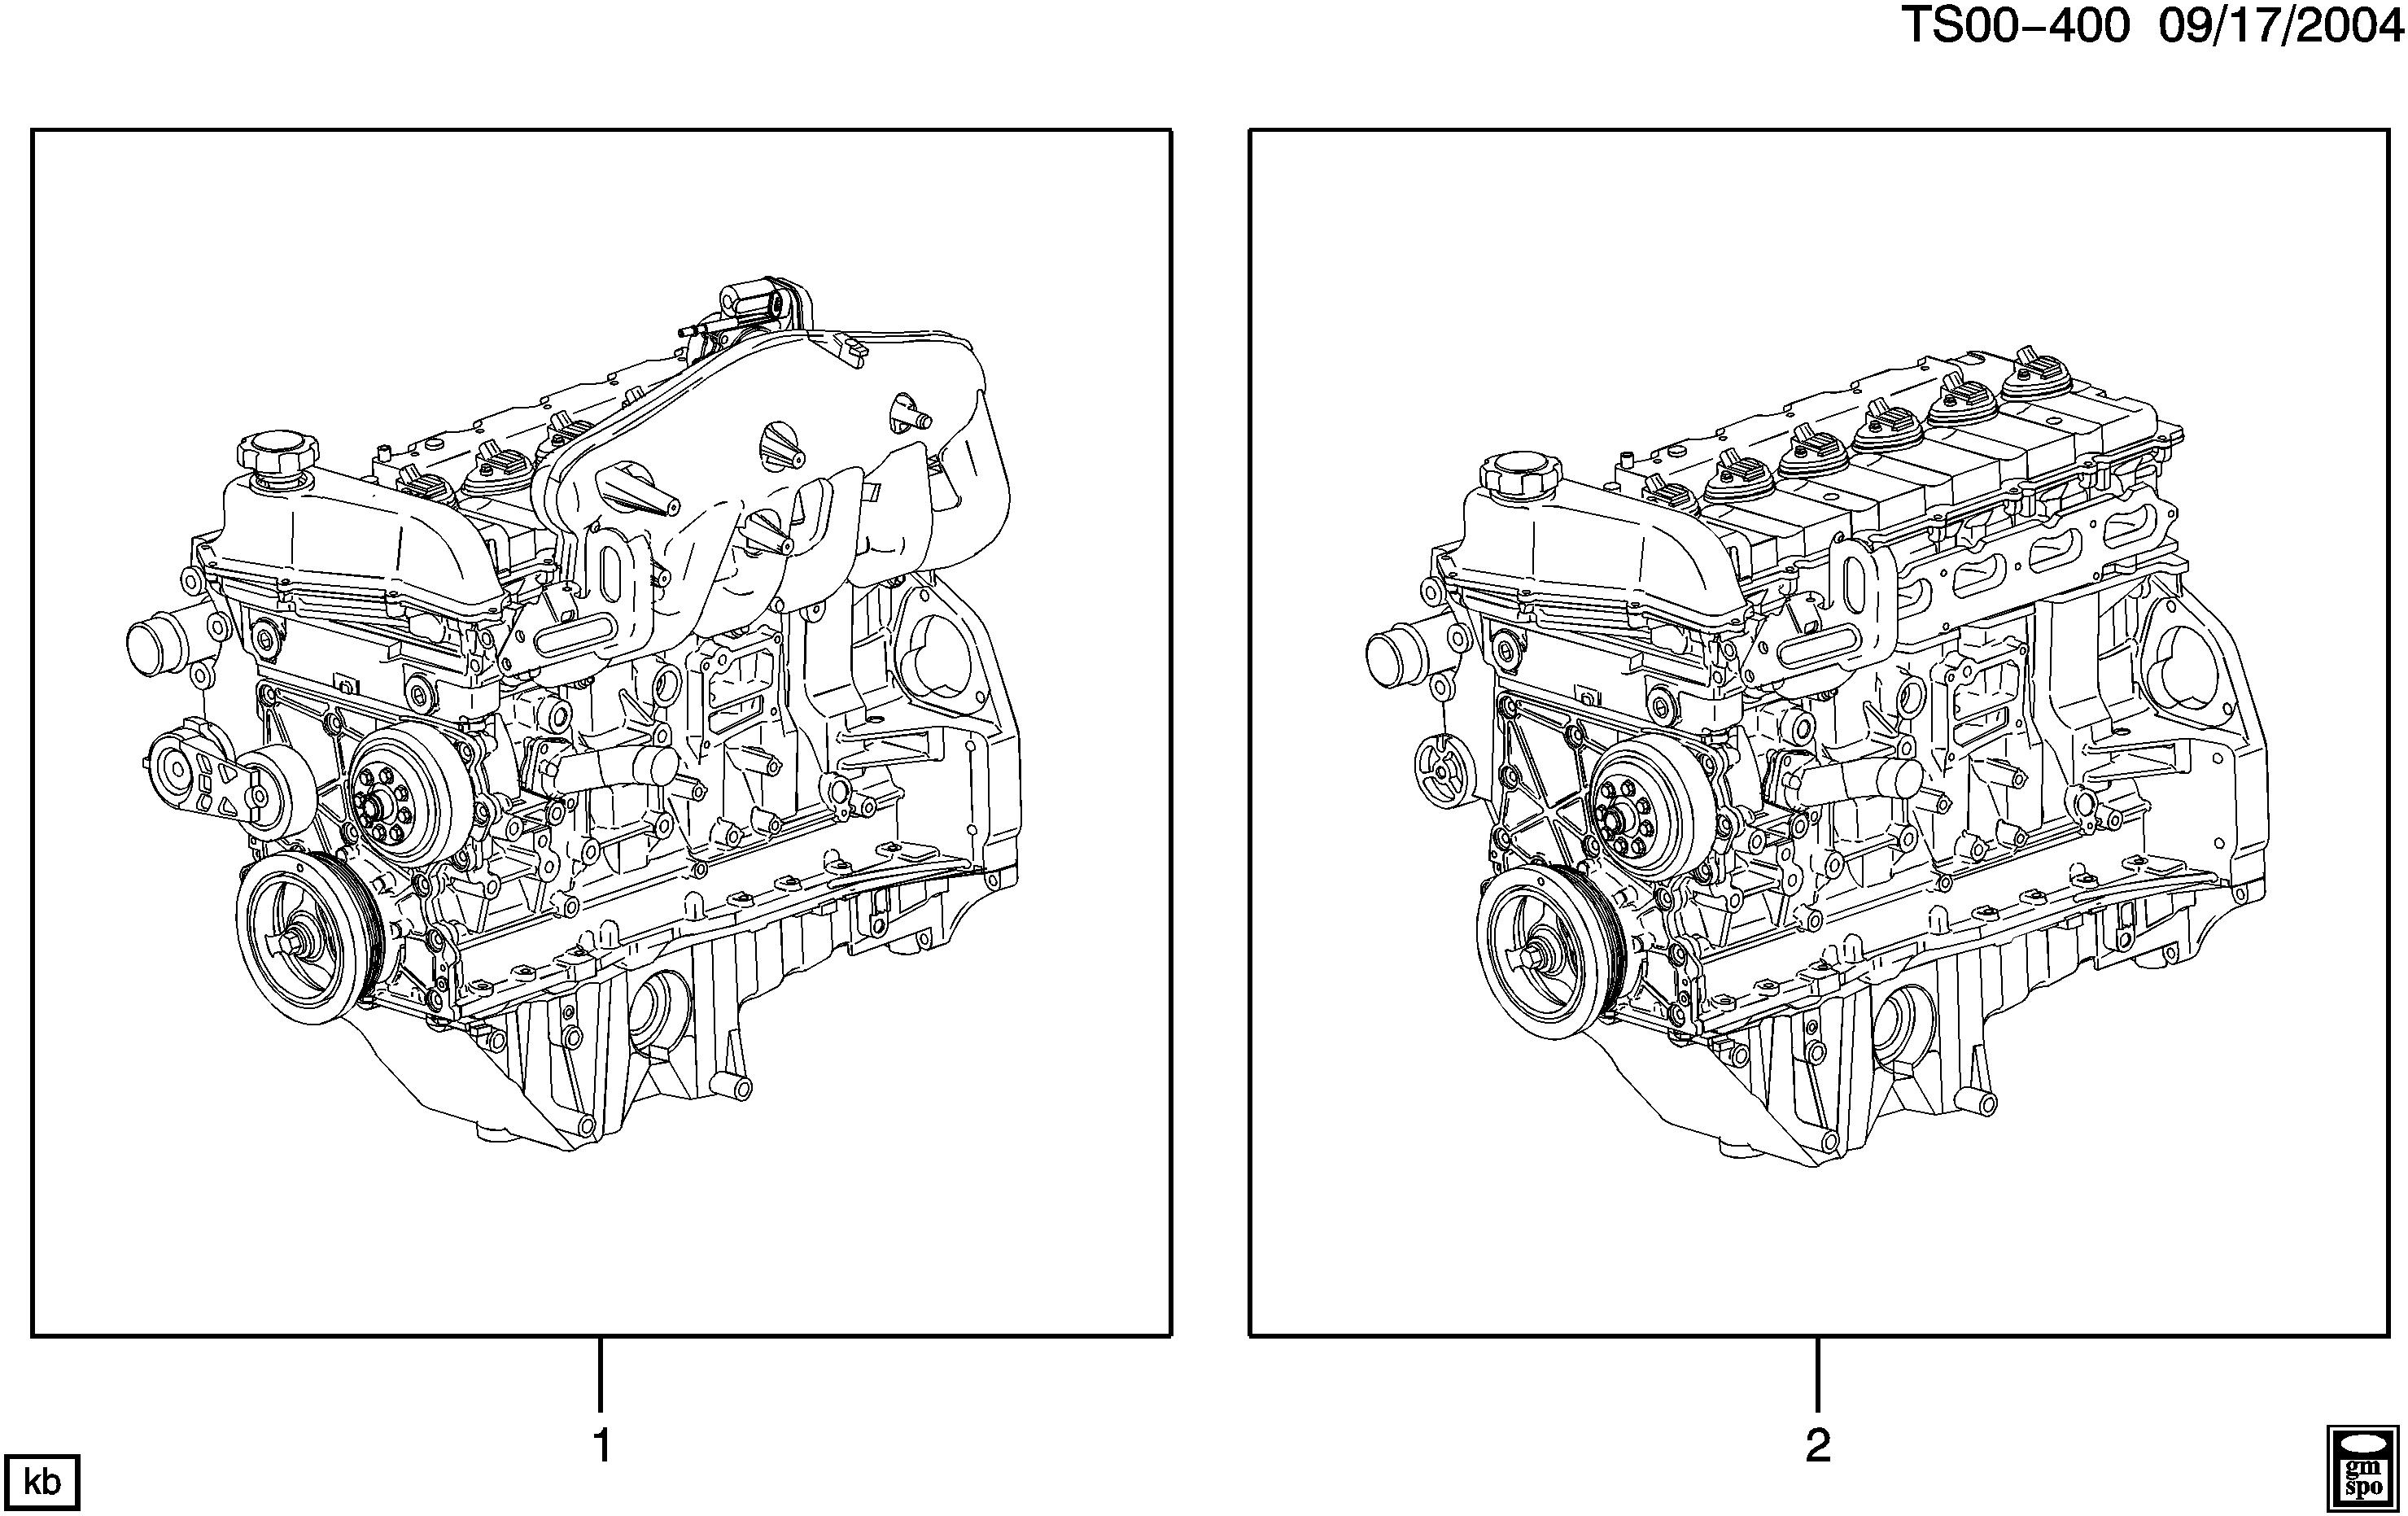 2005-2009 T1 ENGINE ASM & PARTIAL ENGINE (LL8/4.2S)